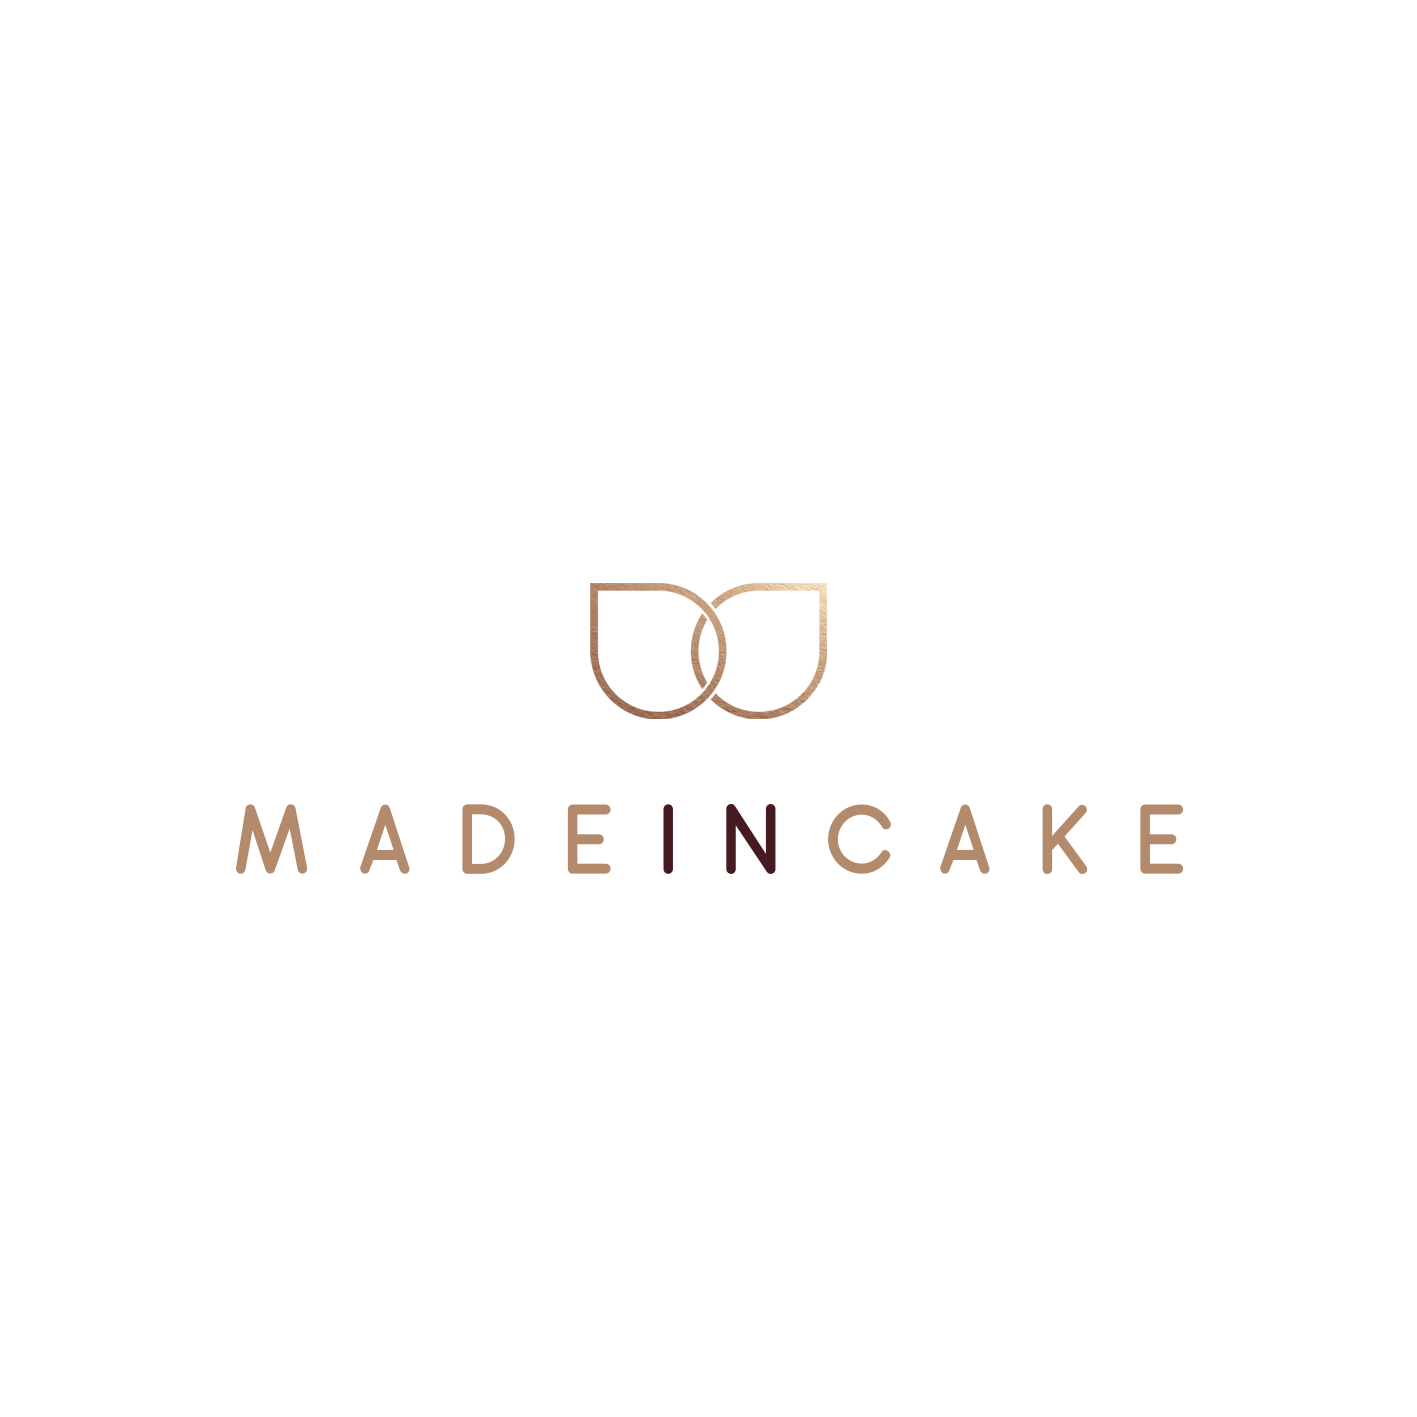 Made in cake